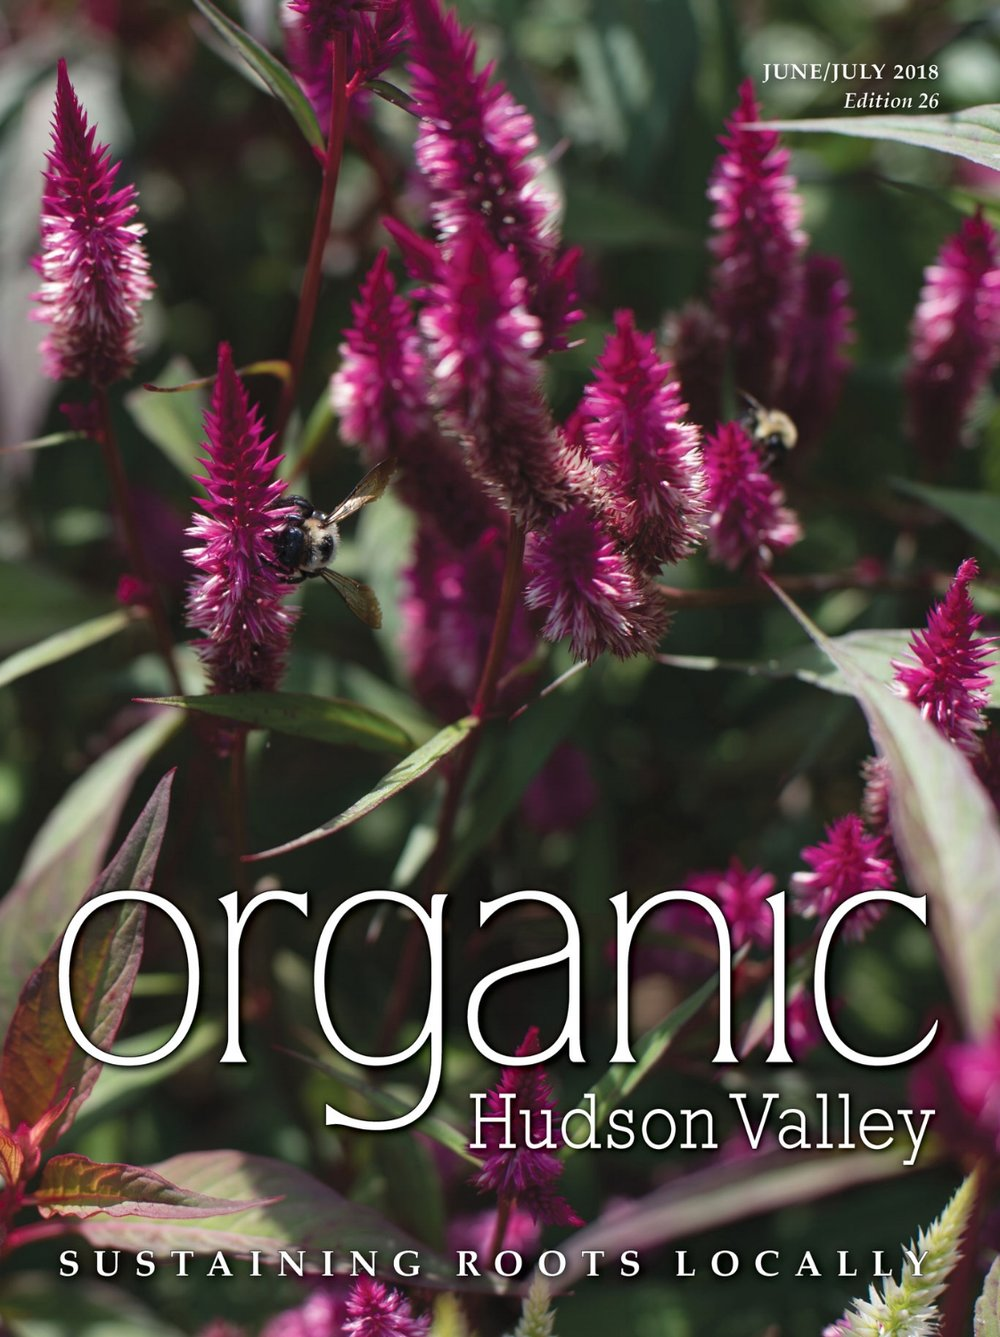 Organic Hudson Valley June/July 2018 Cover